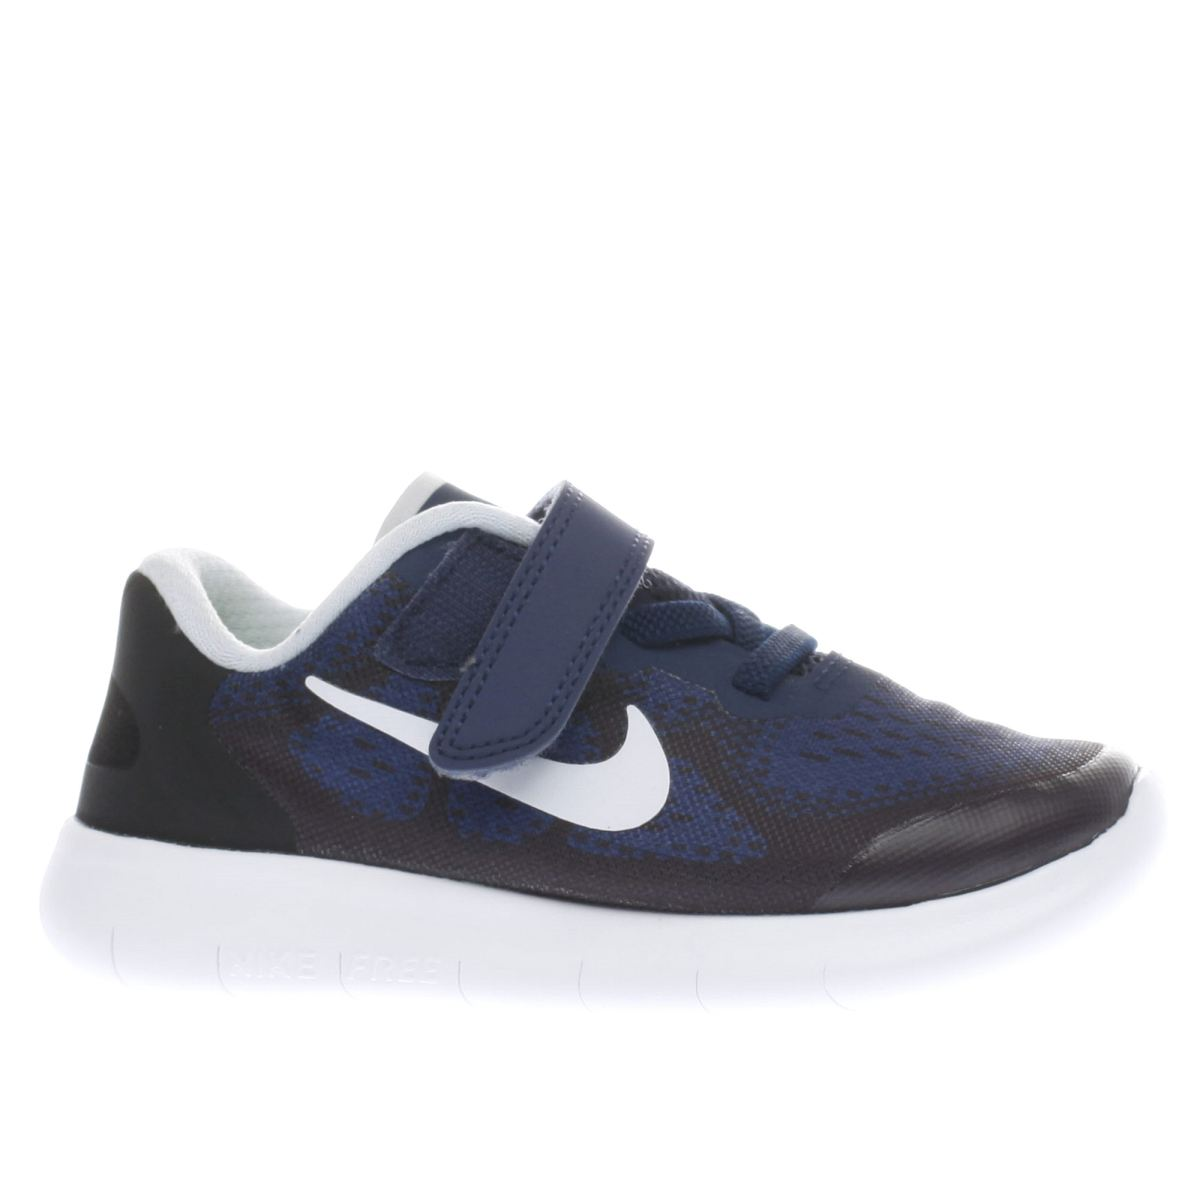 nike navy & black free run 2 Boys Toddler Trainers